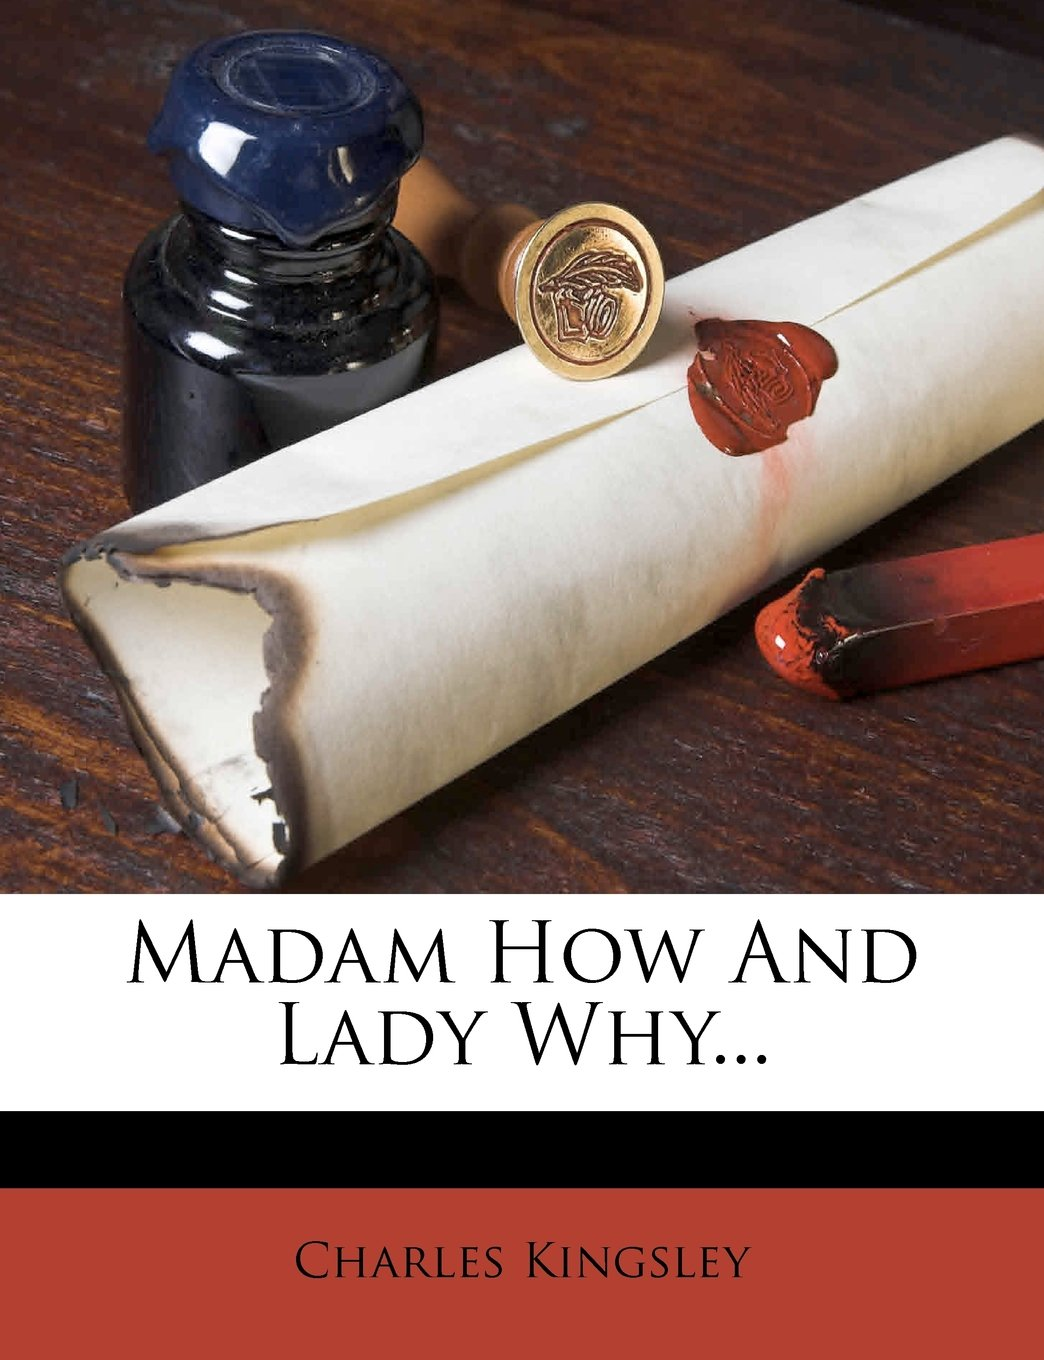 Madam How And Lady Why... pdf